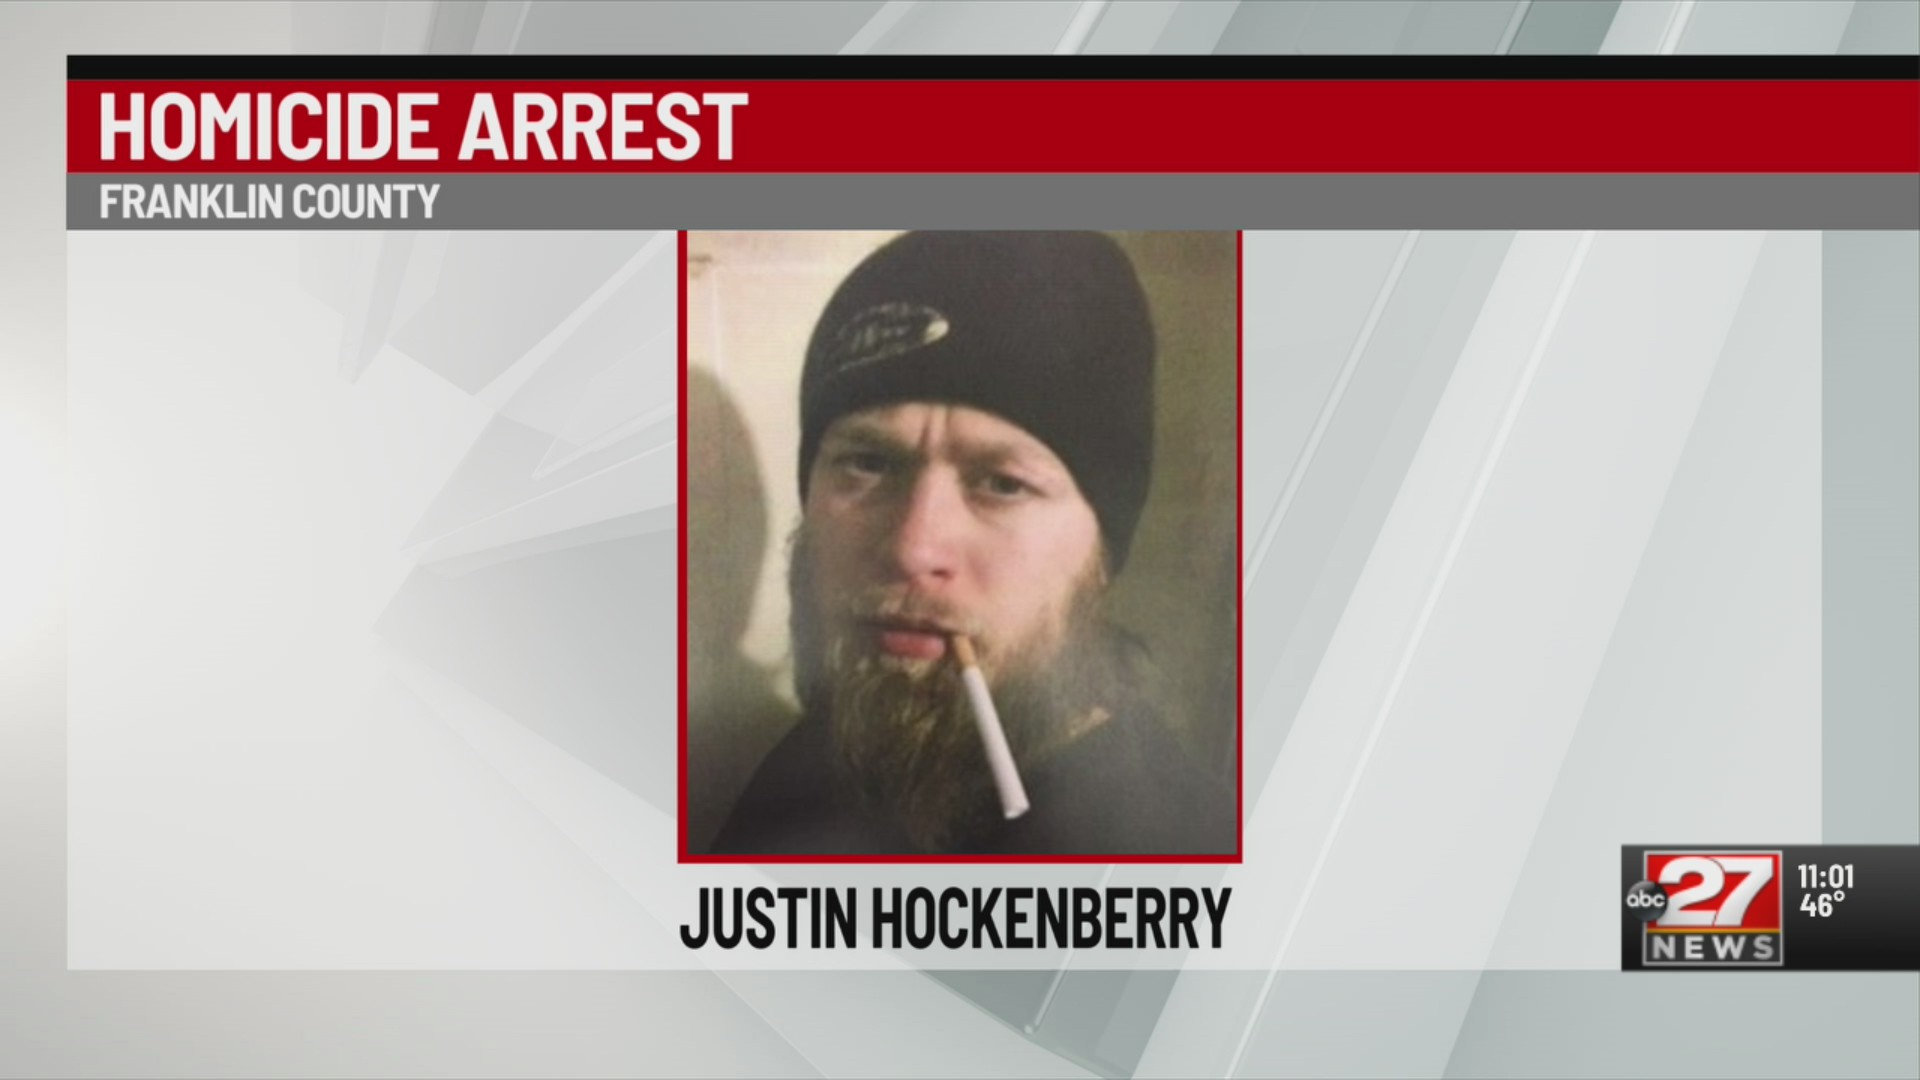 Hockenberry arrested